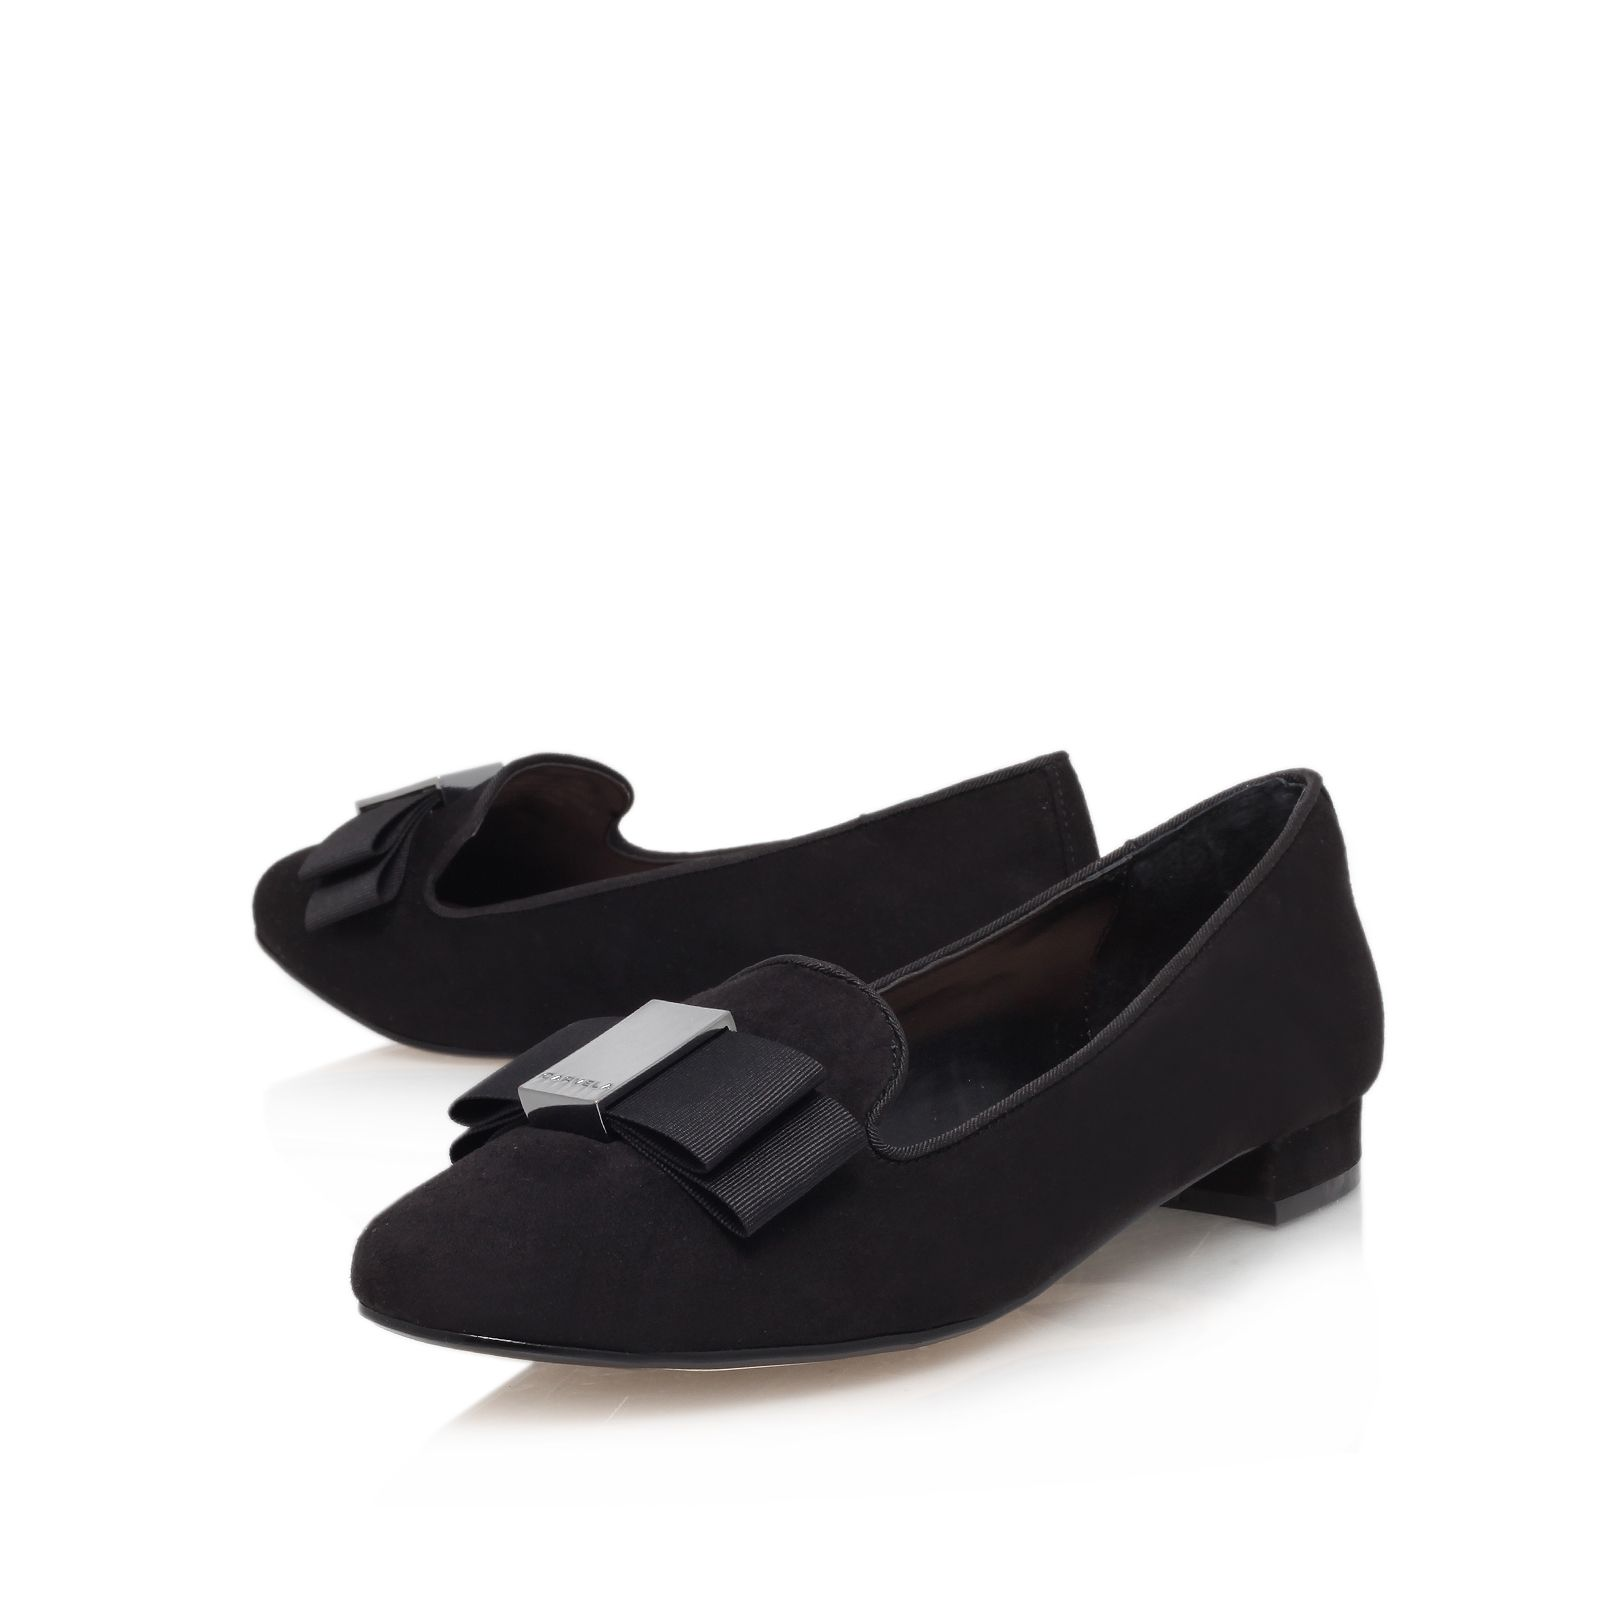 Lacey flat court shoes